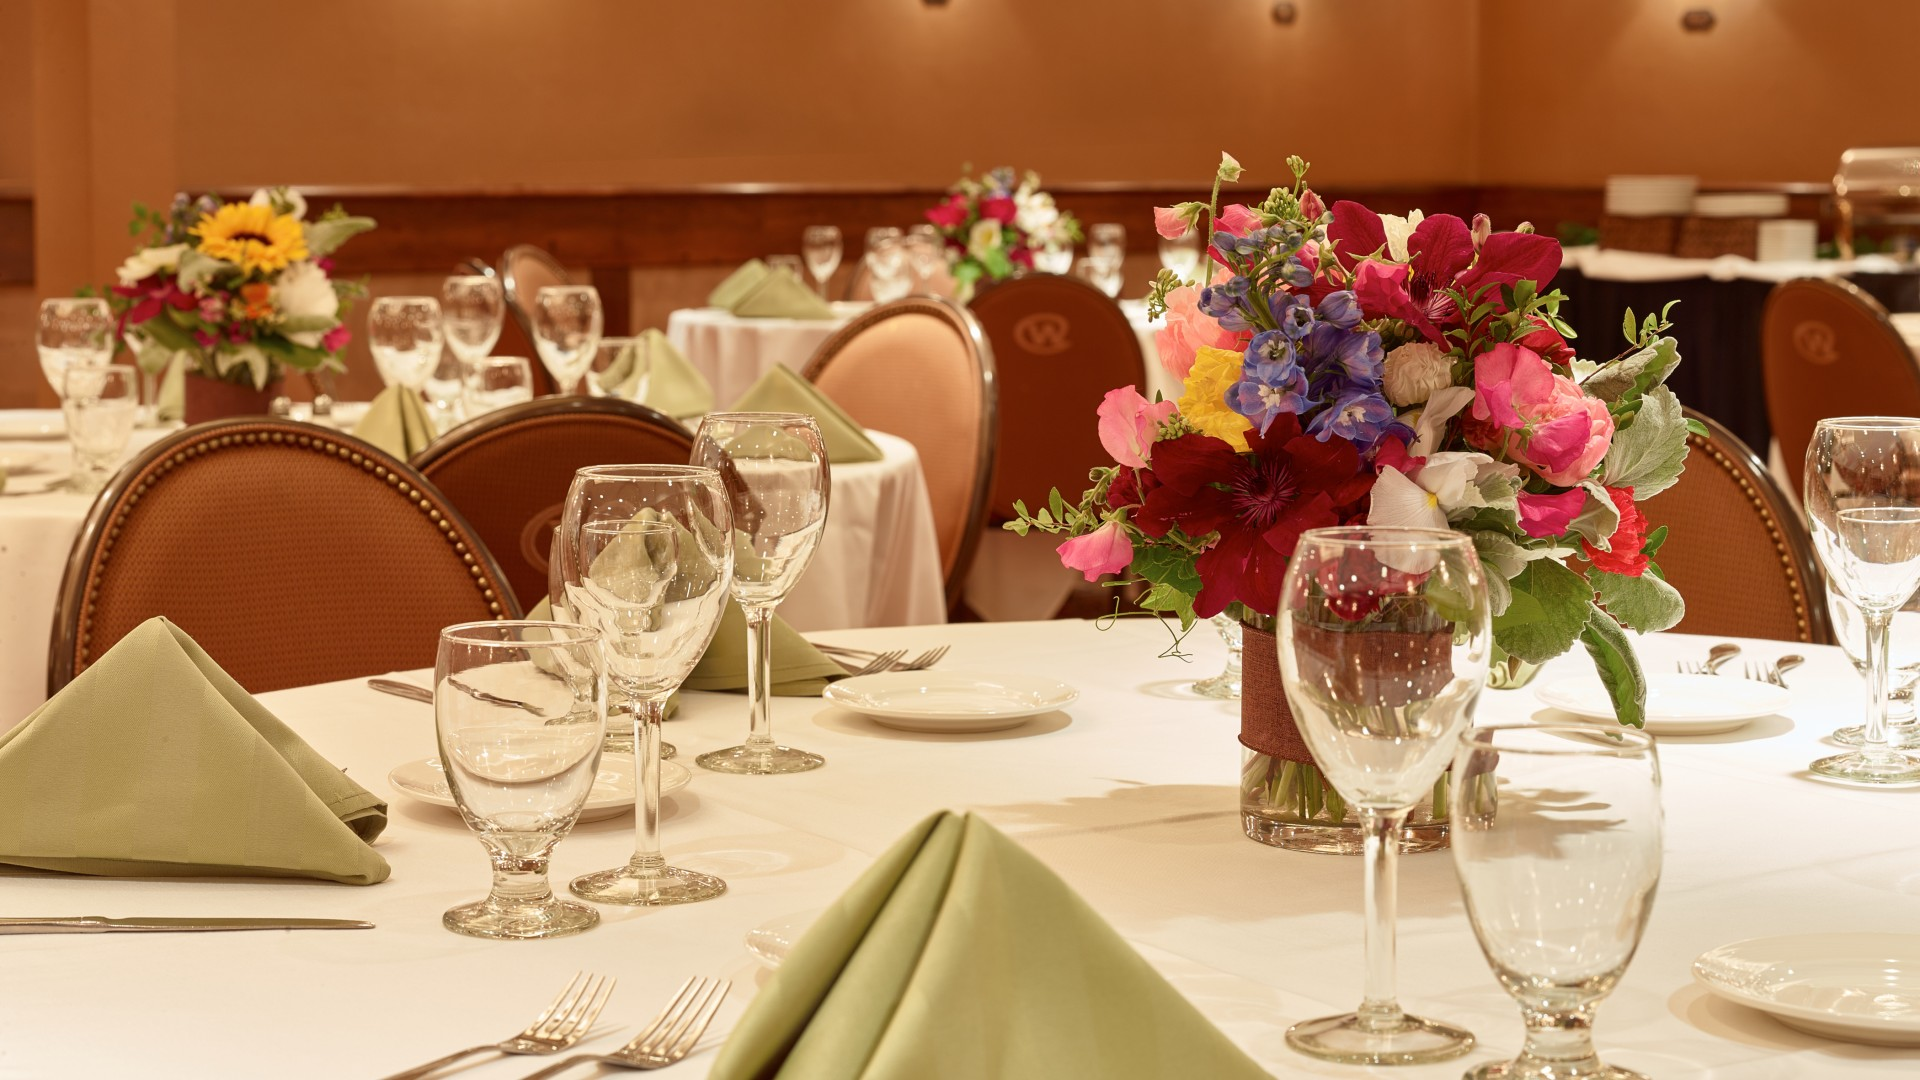 Outstanding Service, Elegant Atmosphere